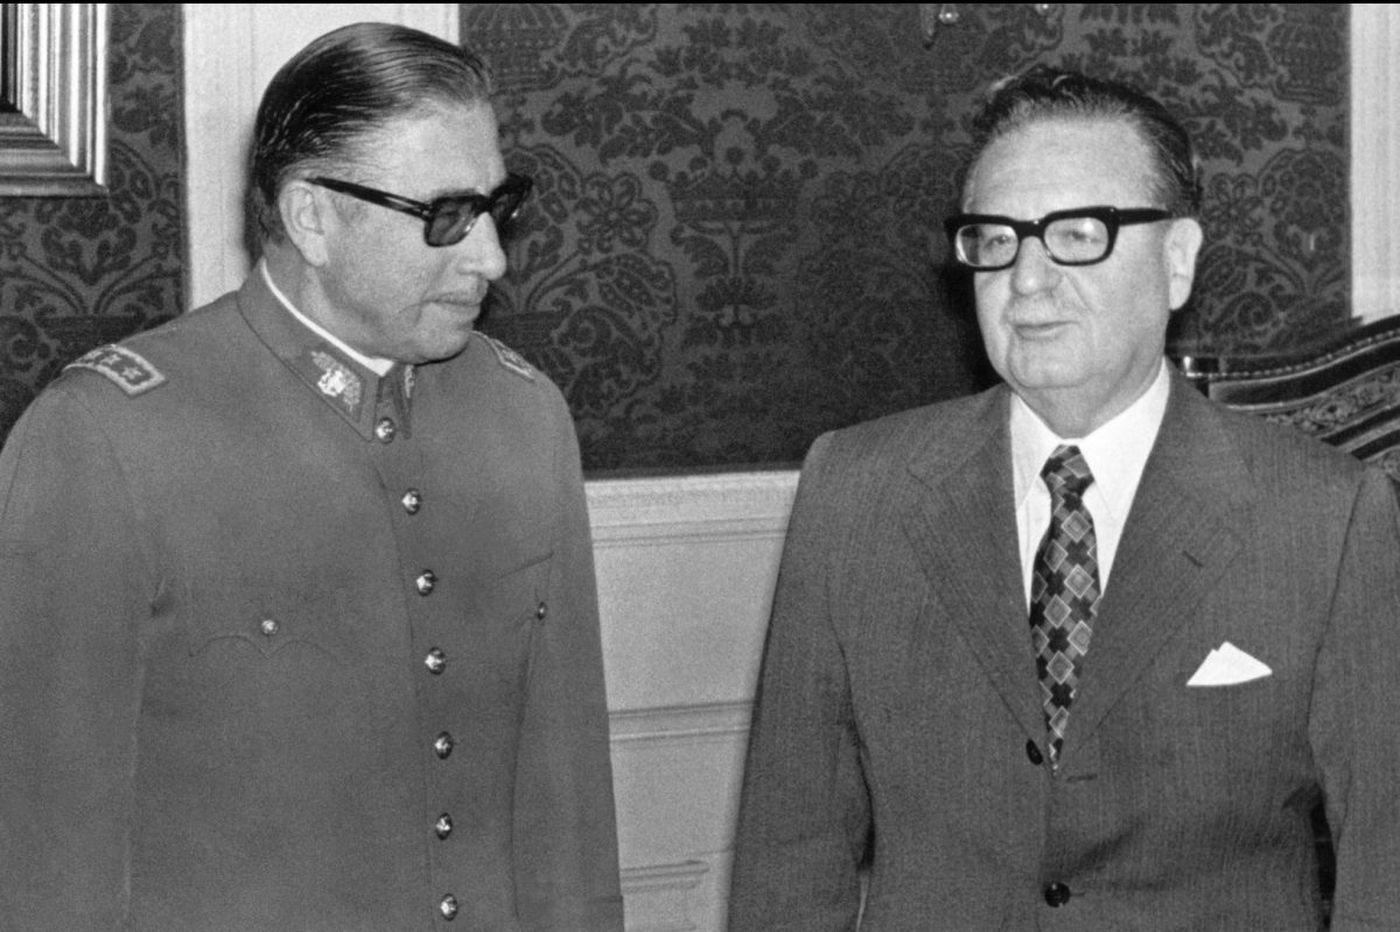 In 1970, the U.S. meddled in Chile's election, with tragic results